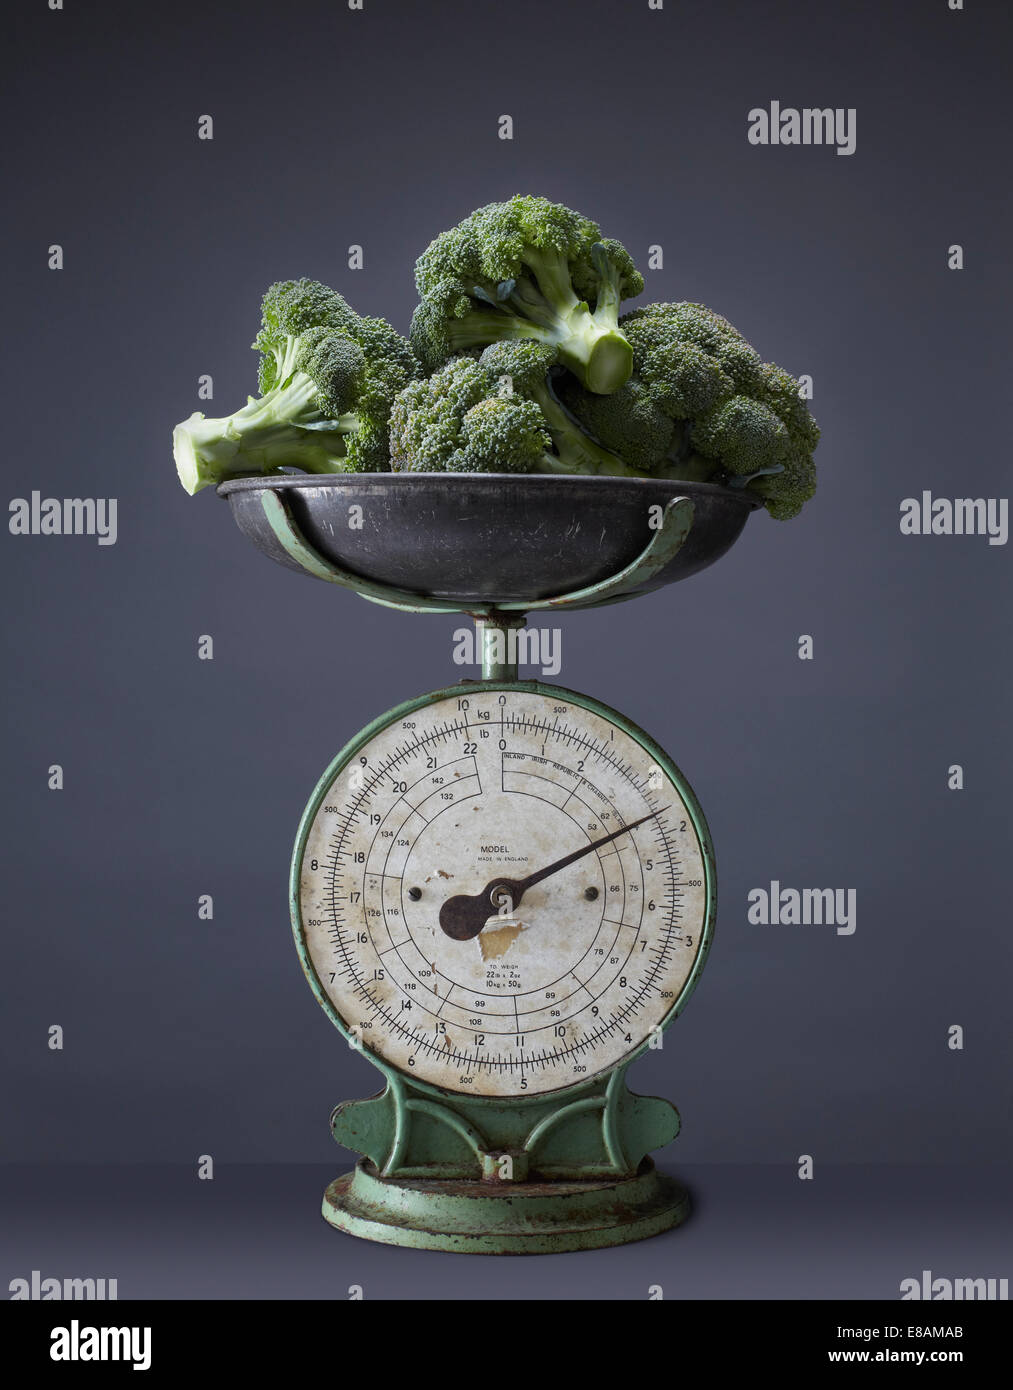 Fresh broccoli on top of vintage kitchen scales - Stock Image